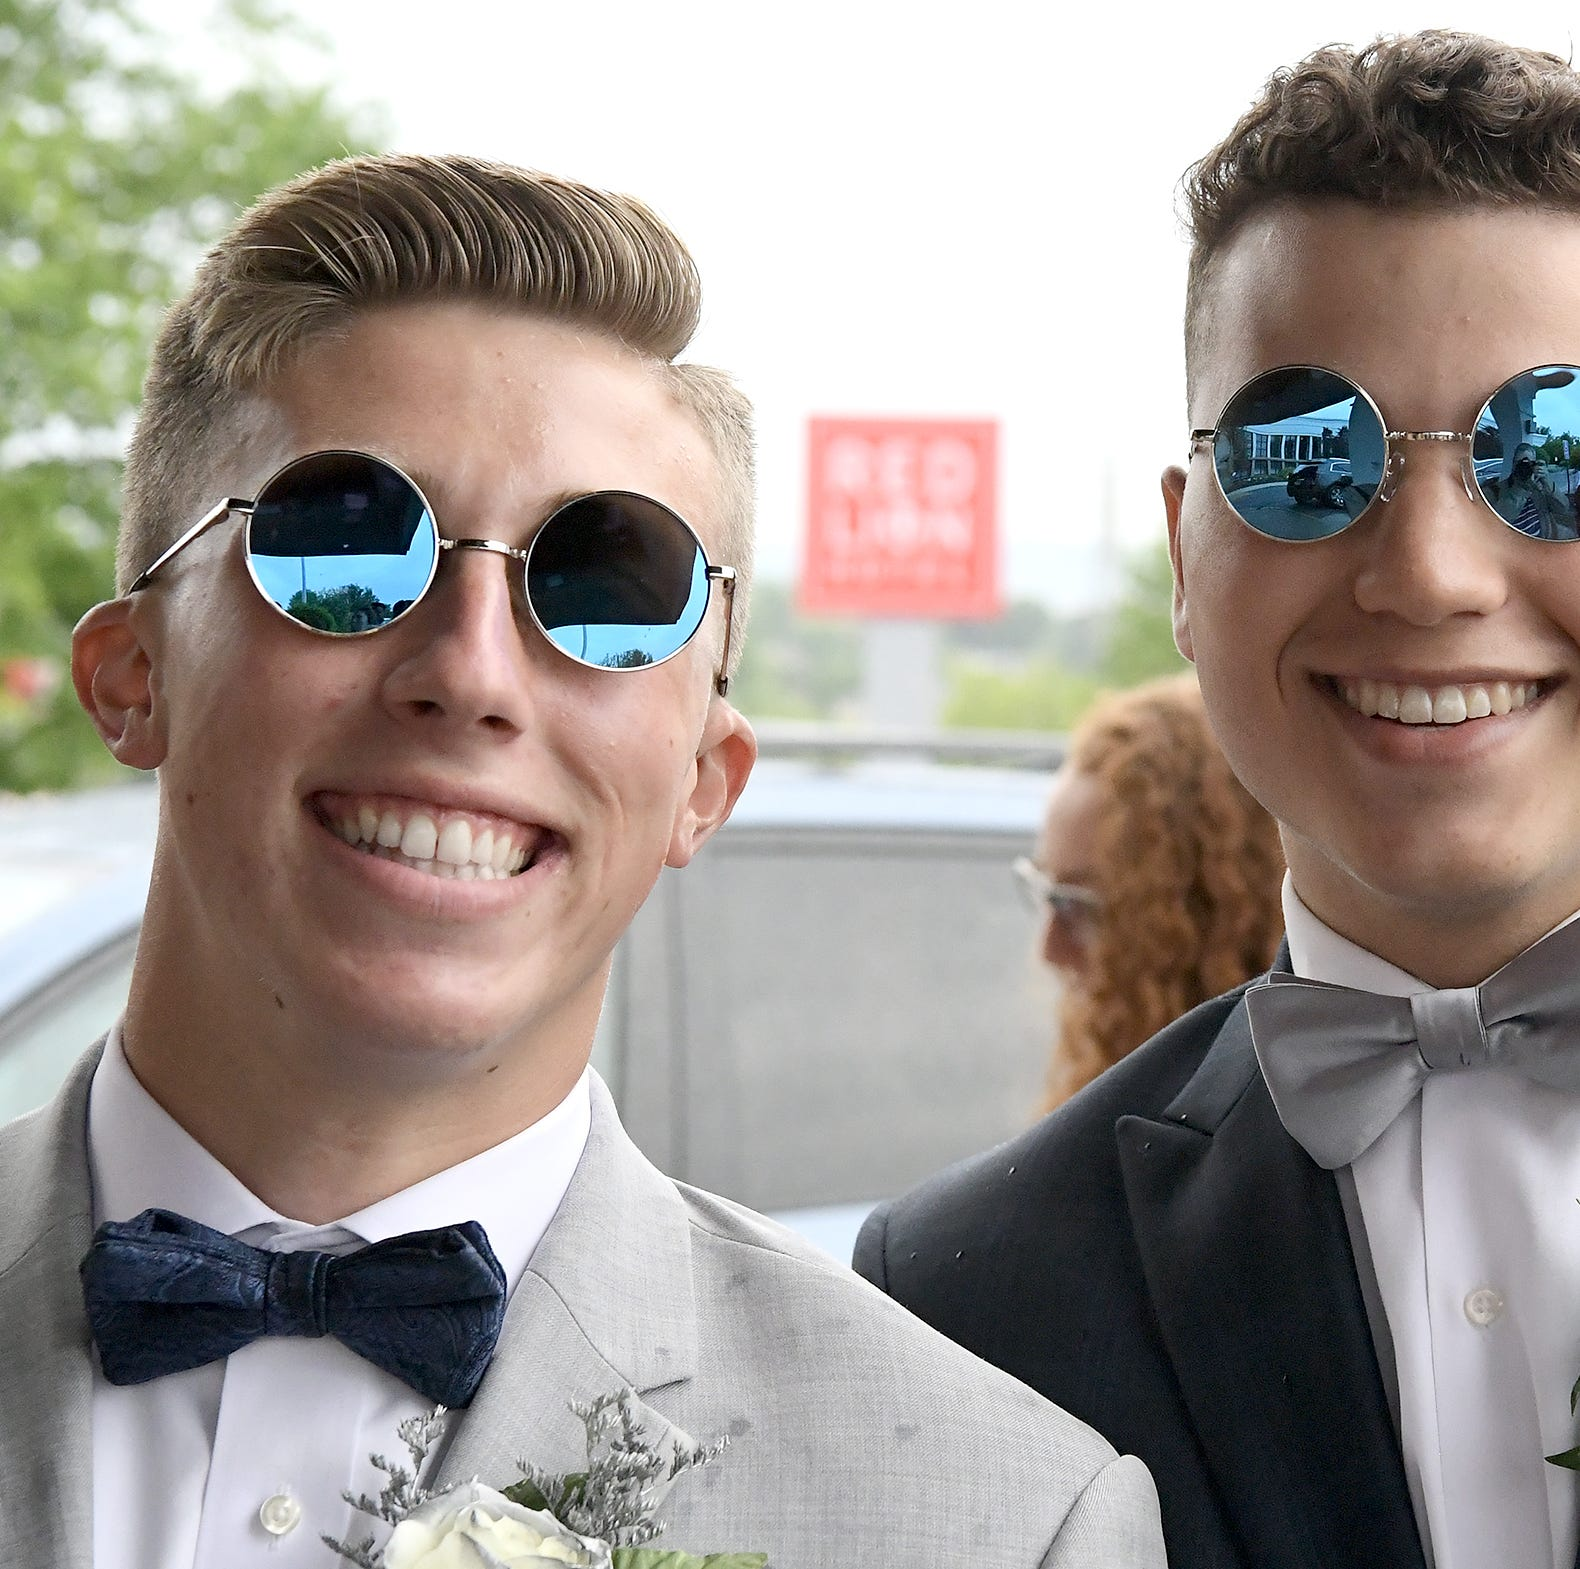 PHOTOS: Red Land High School celebrates 2019 prom at Red Lion Hotel